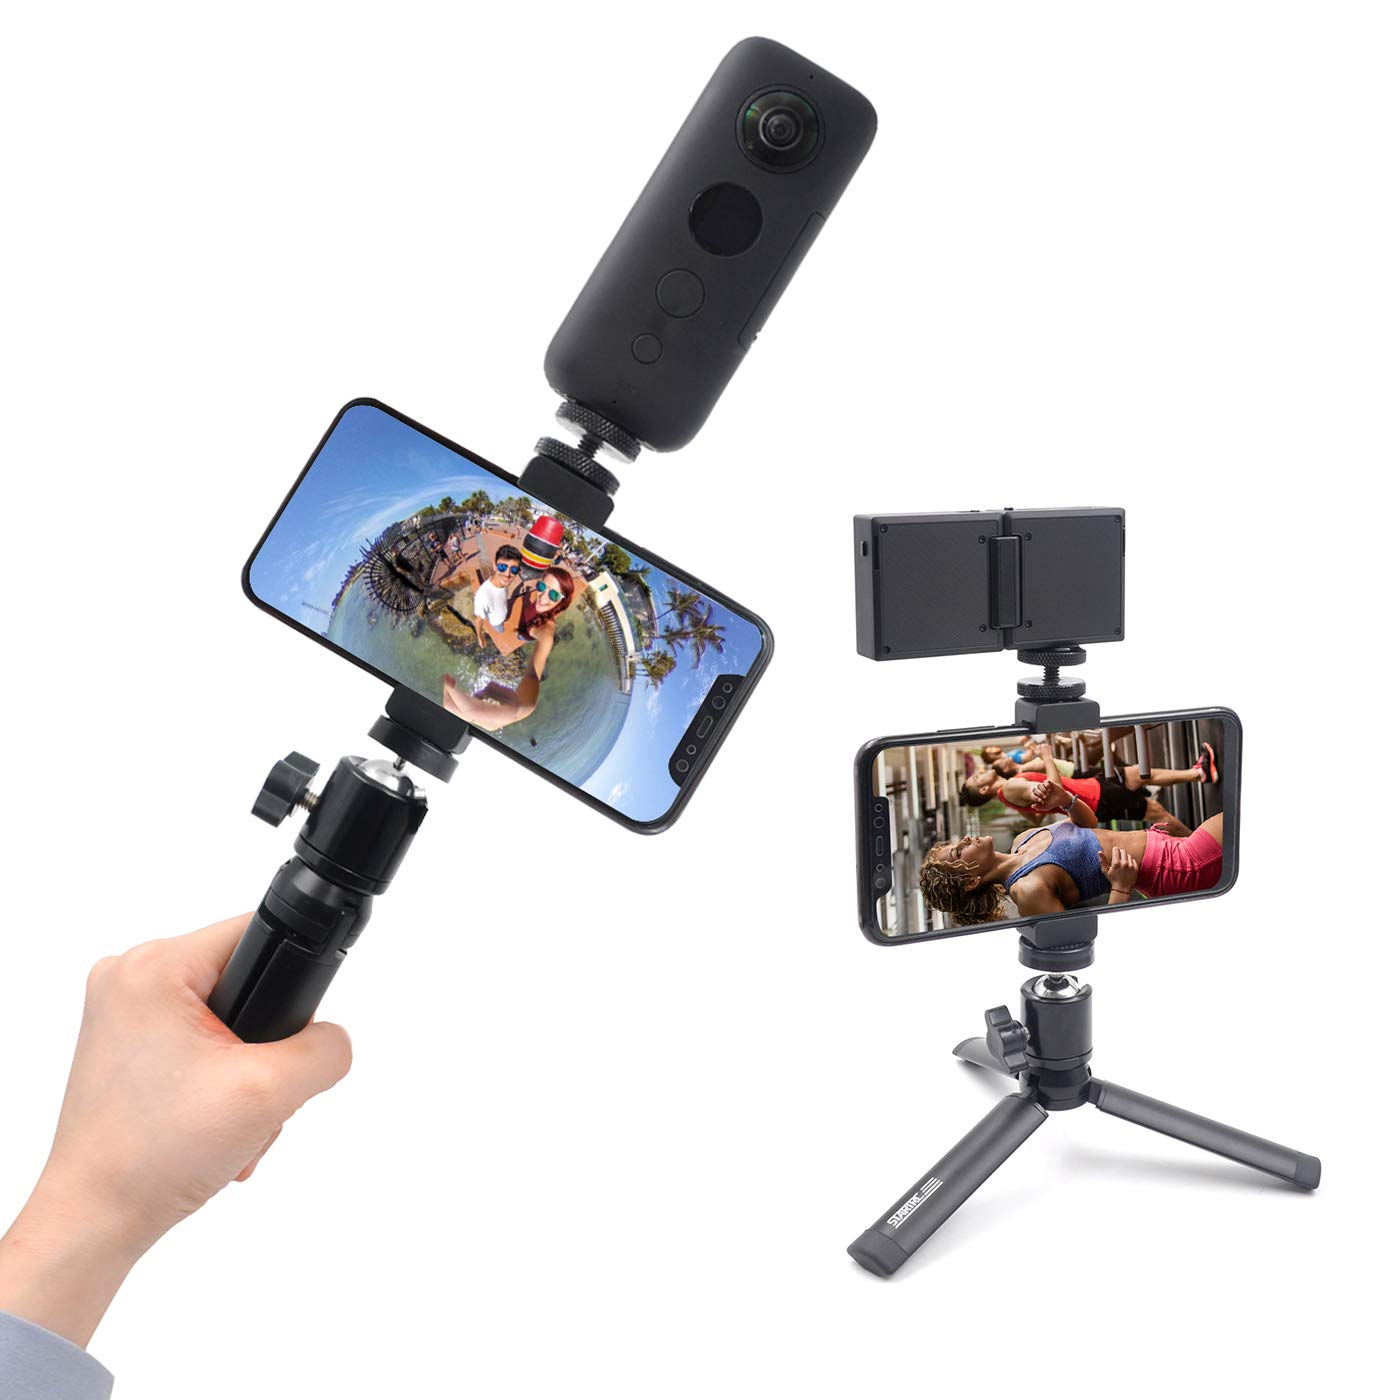 STARTRC Mini Tripod for Selfie Stick Monopod Stabilizer,Handheld Folding Cellphone Aluminum Tripod Mount Stand for Insta360 ONE X/EVO Camera Accessories